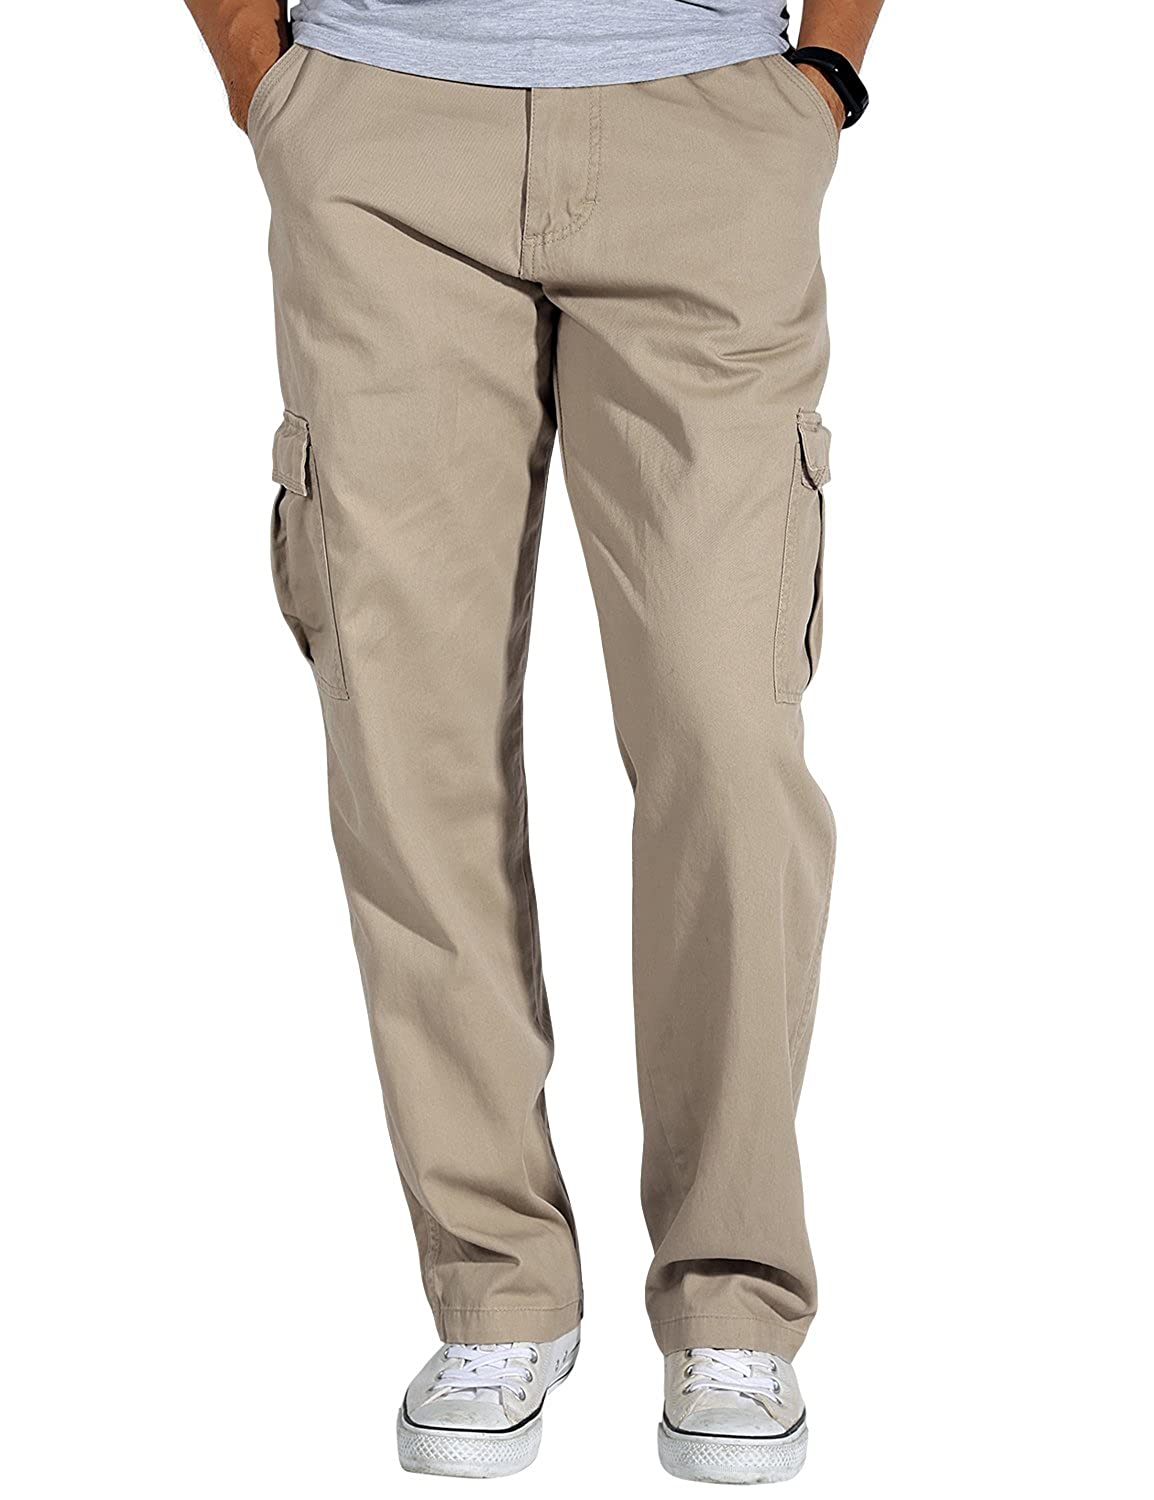 276c7a1d8d Match Men's Loose-Fit Straight Leg Twill Cargo Pants #6039 at Amazon Men's  Clothing store: